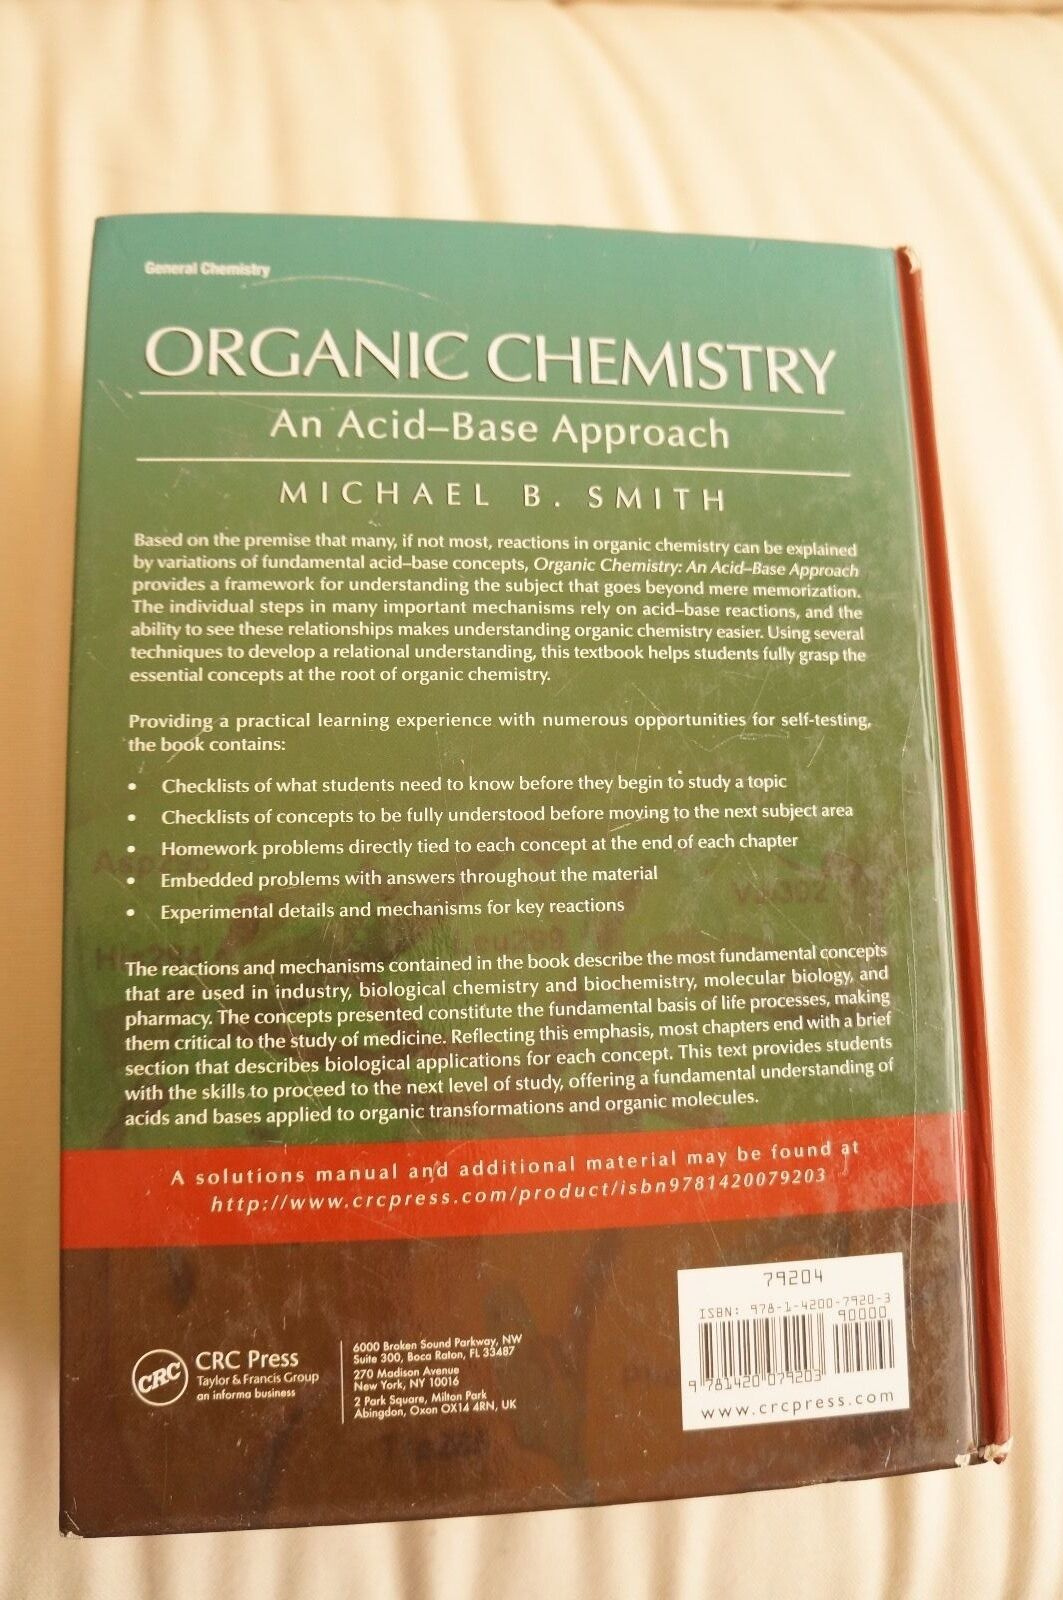 Organic Chemistry : An Acid-Base Approach by Michael Smith (2010,  Hardcover) | eBay